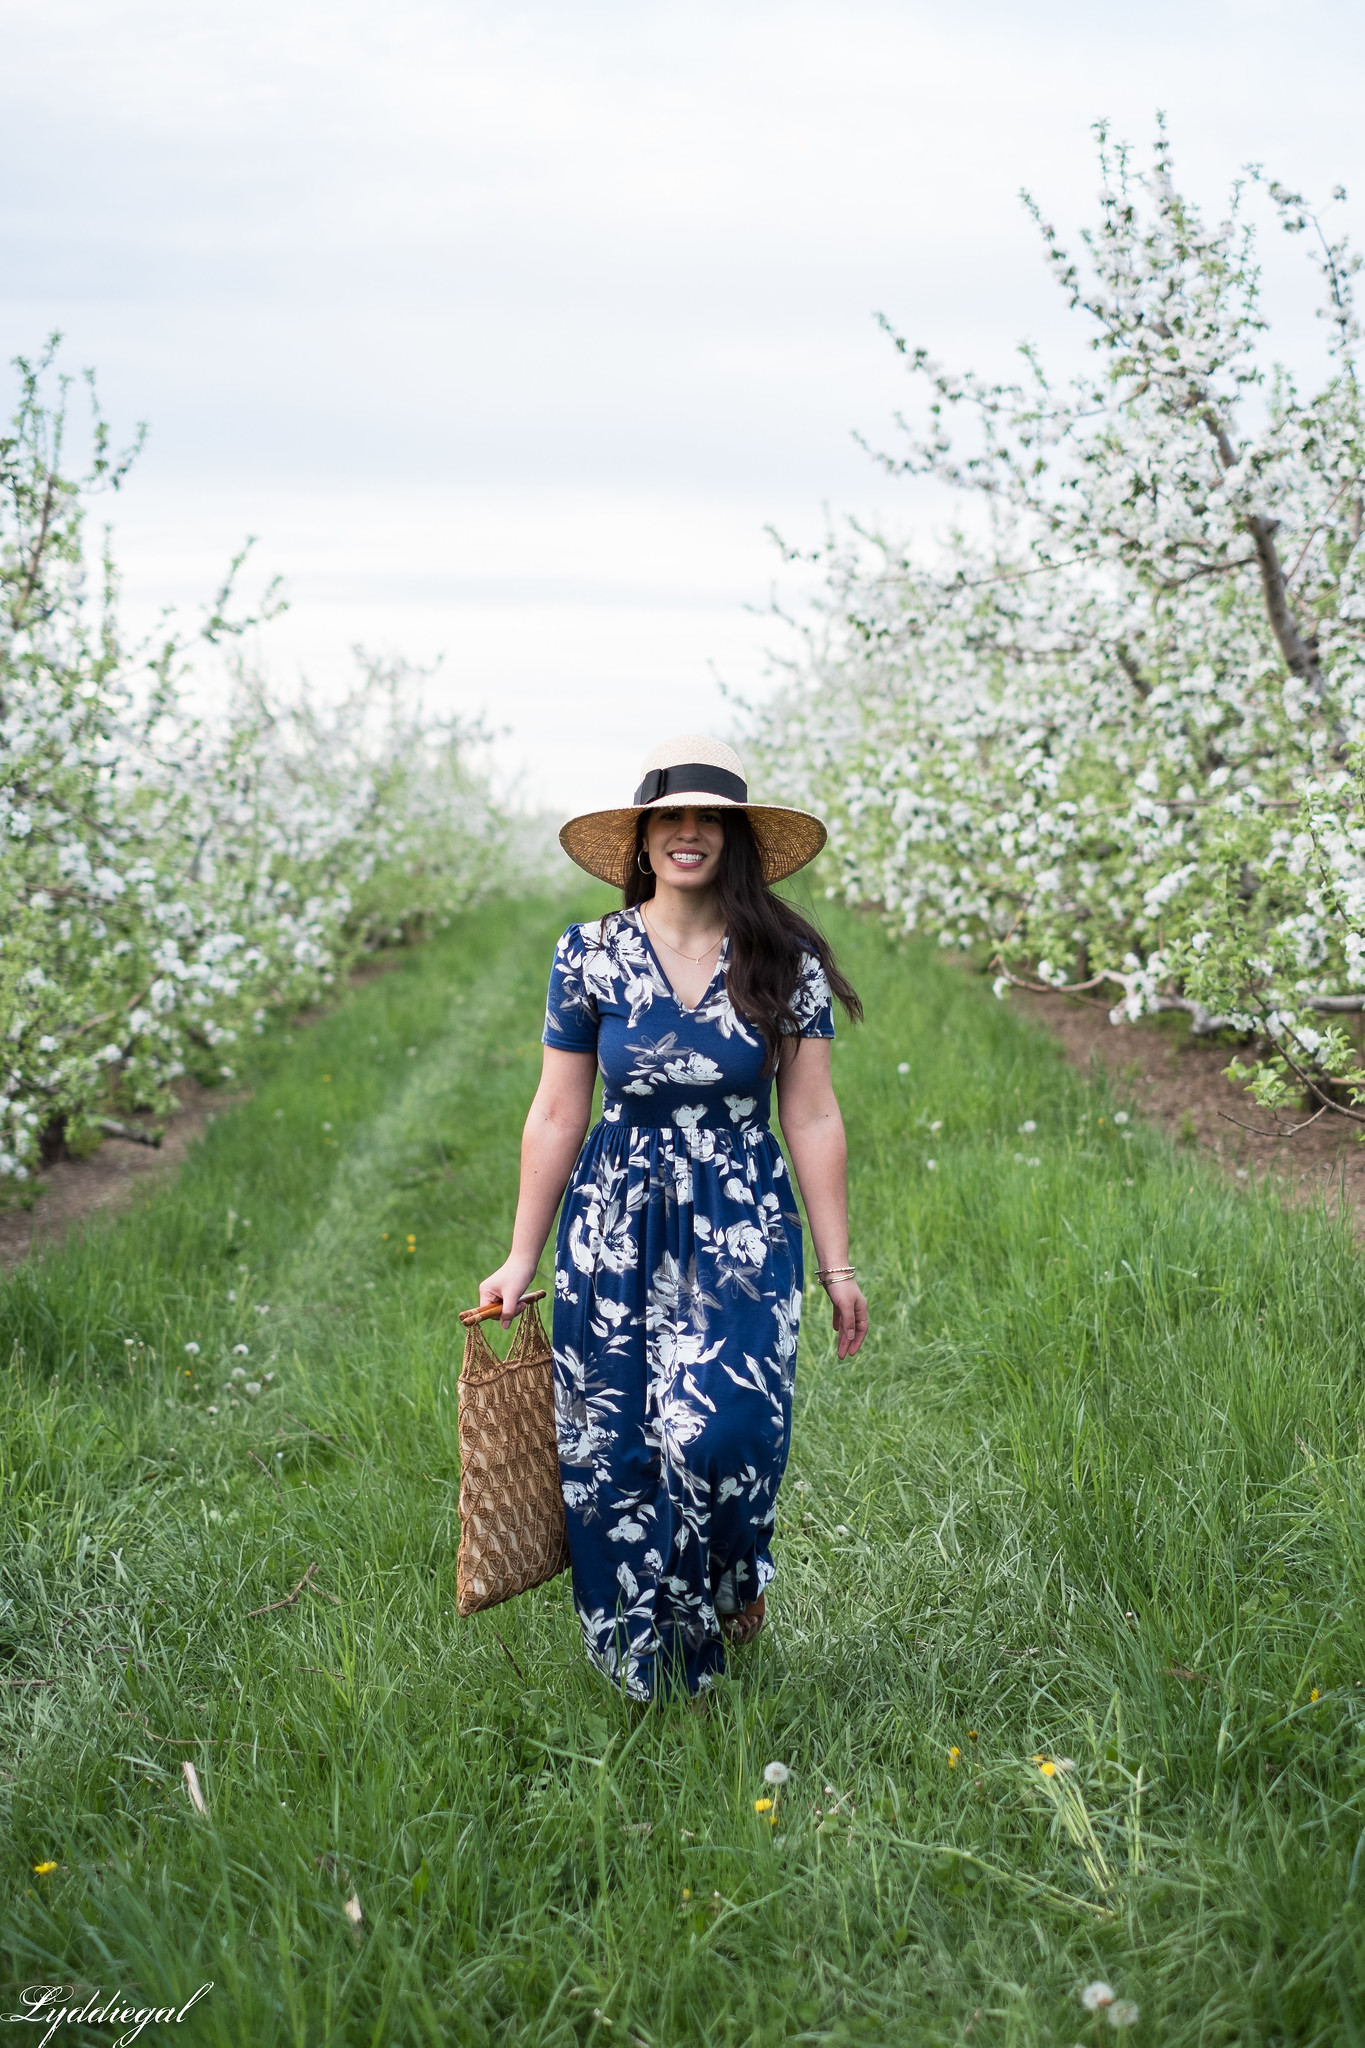 Blue and white floral maxi dress, straw sun hat, macrame bag, apple orchards-26.jpg